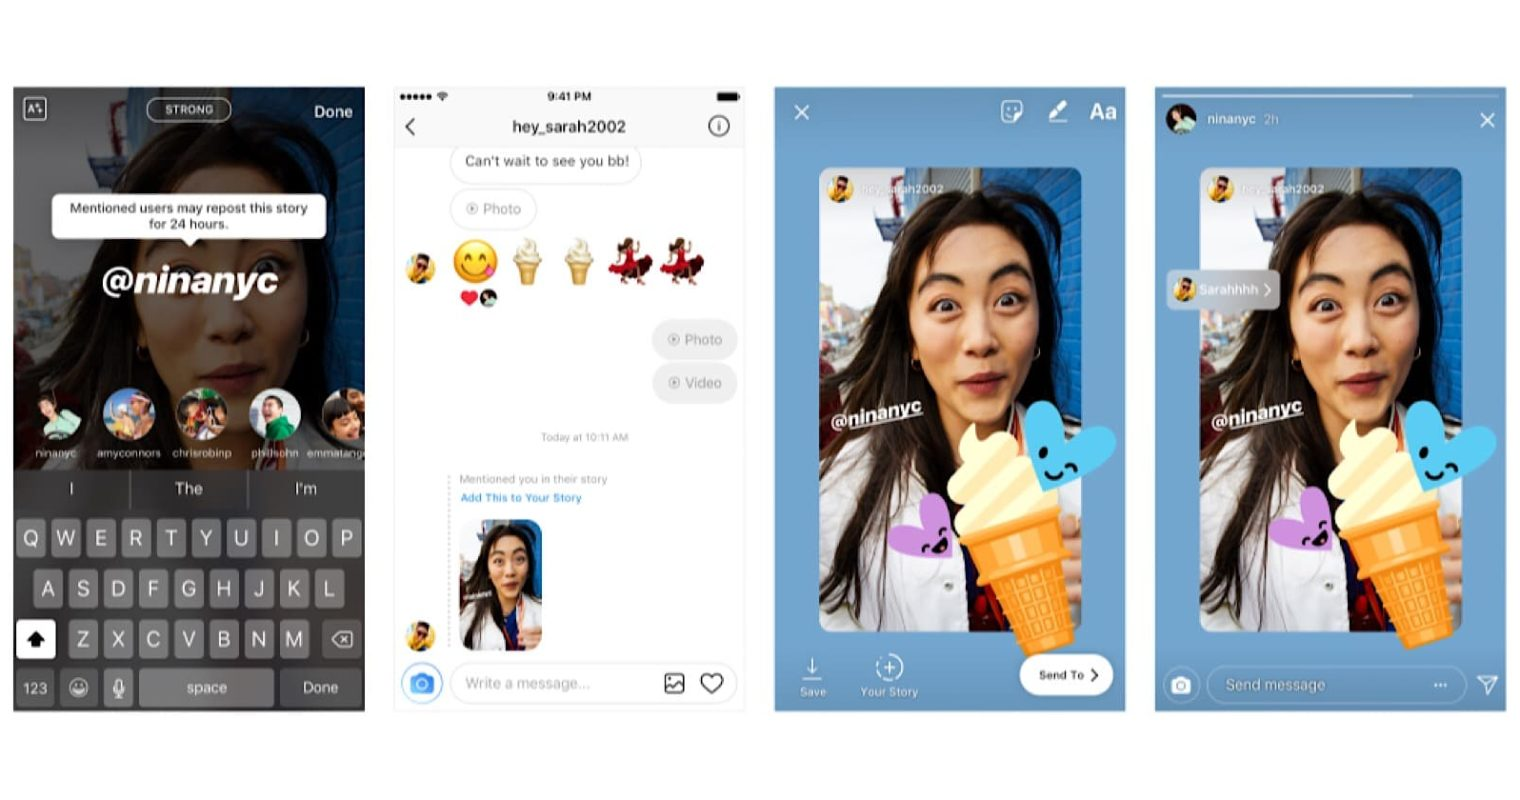 Instagram Lets Users Reshare Stories They've Been Mentioned In